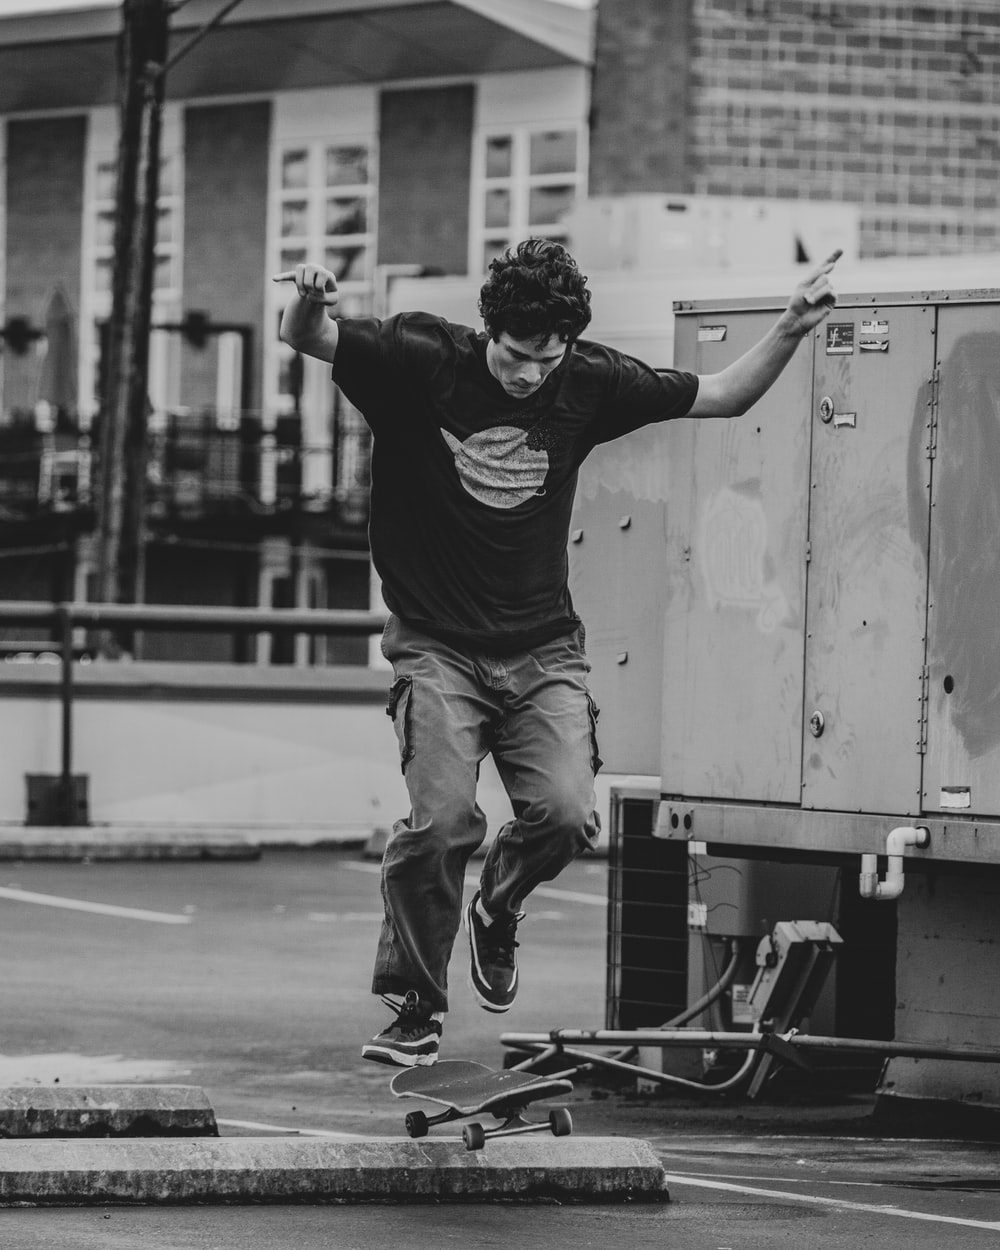 man in black t-shirt and brown pants jumping on skateboard in grayscale photography